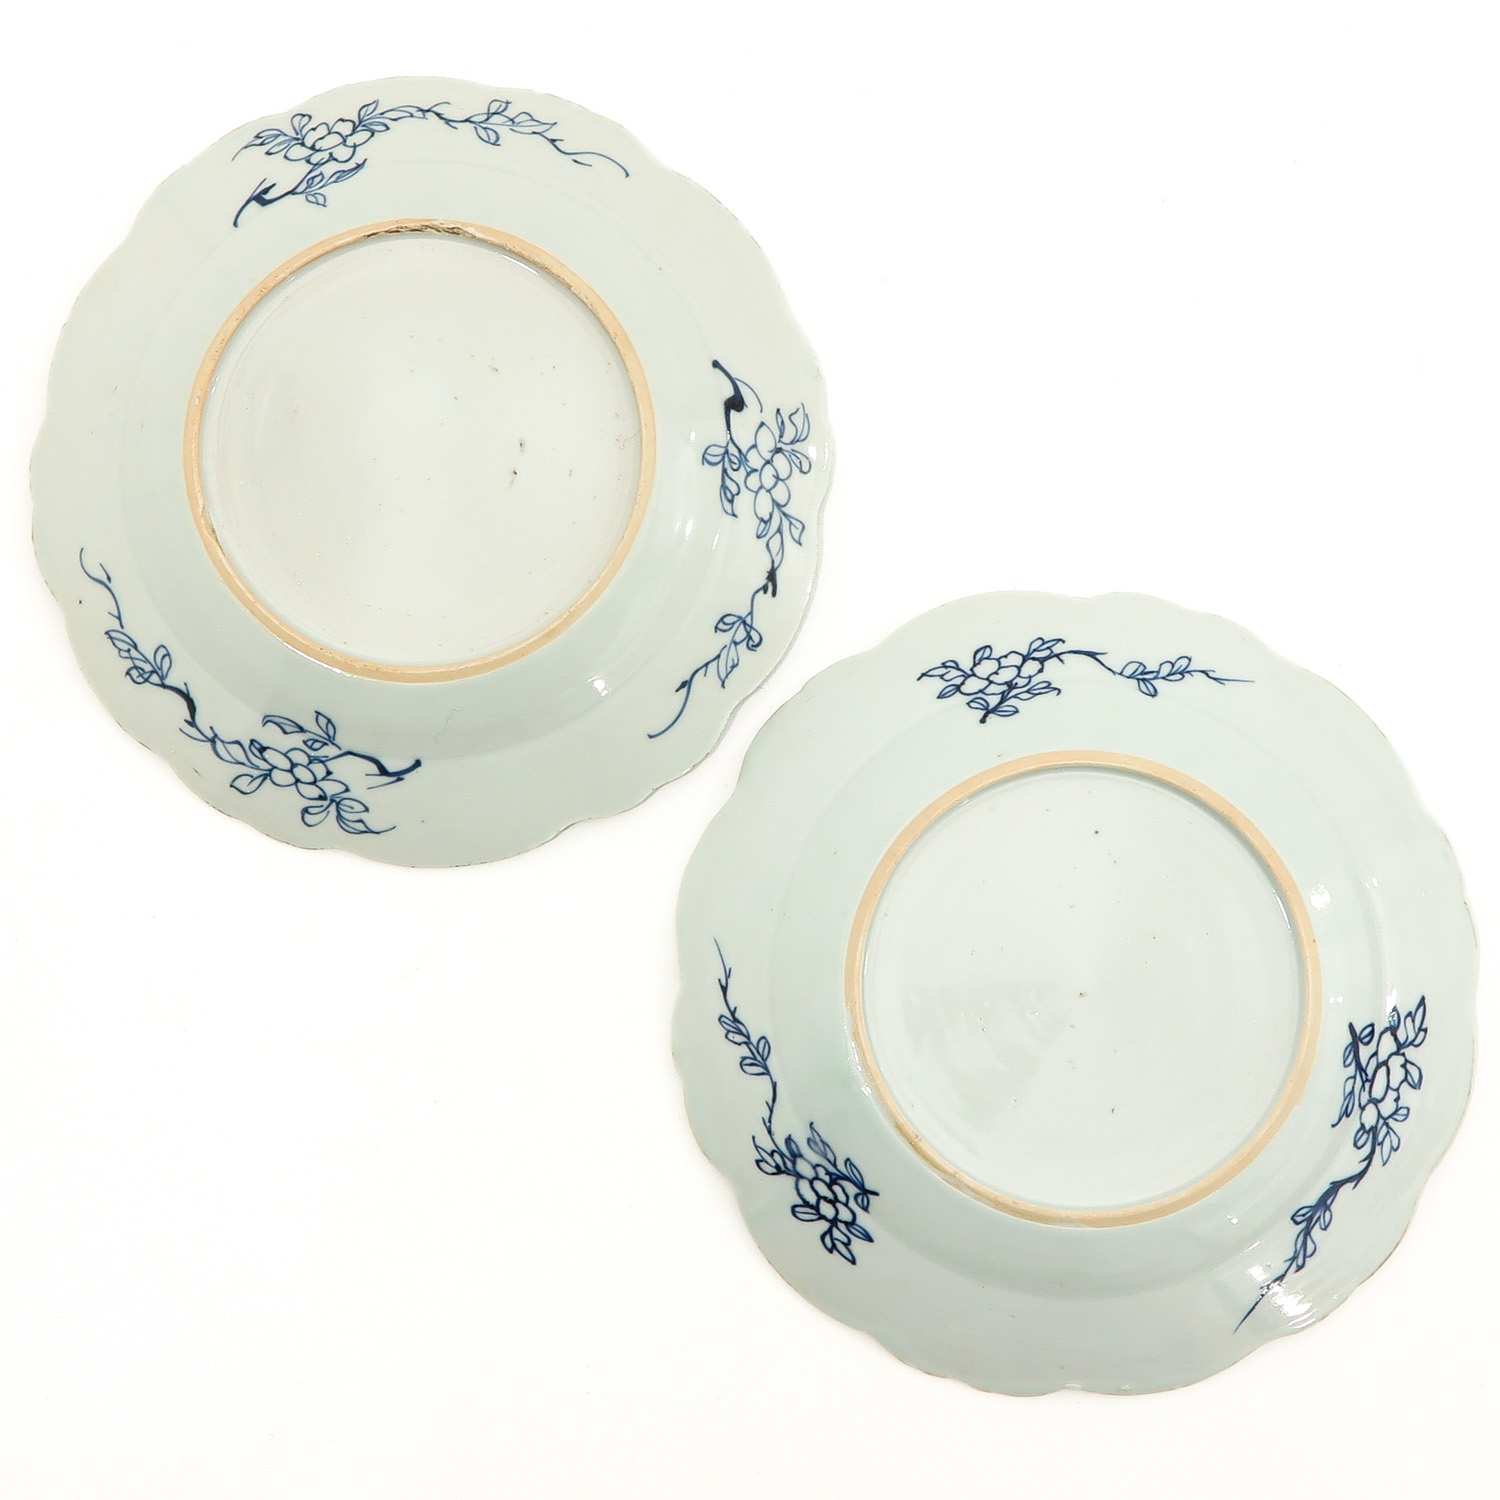 A Set of 6 Blue and White Plates - Image 4 of 10